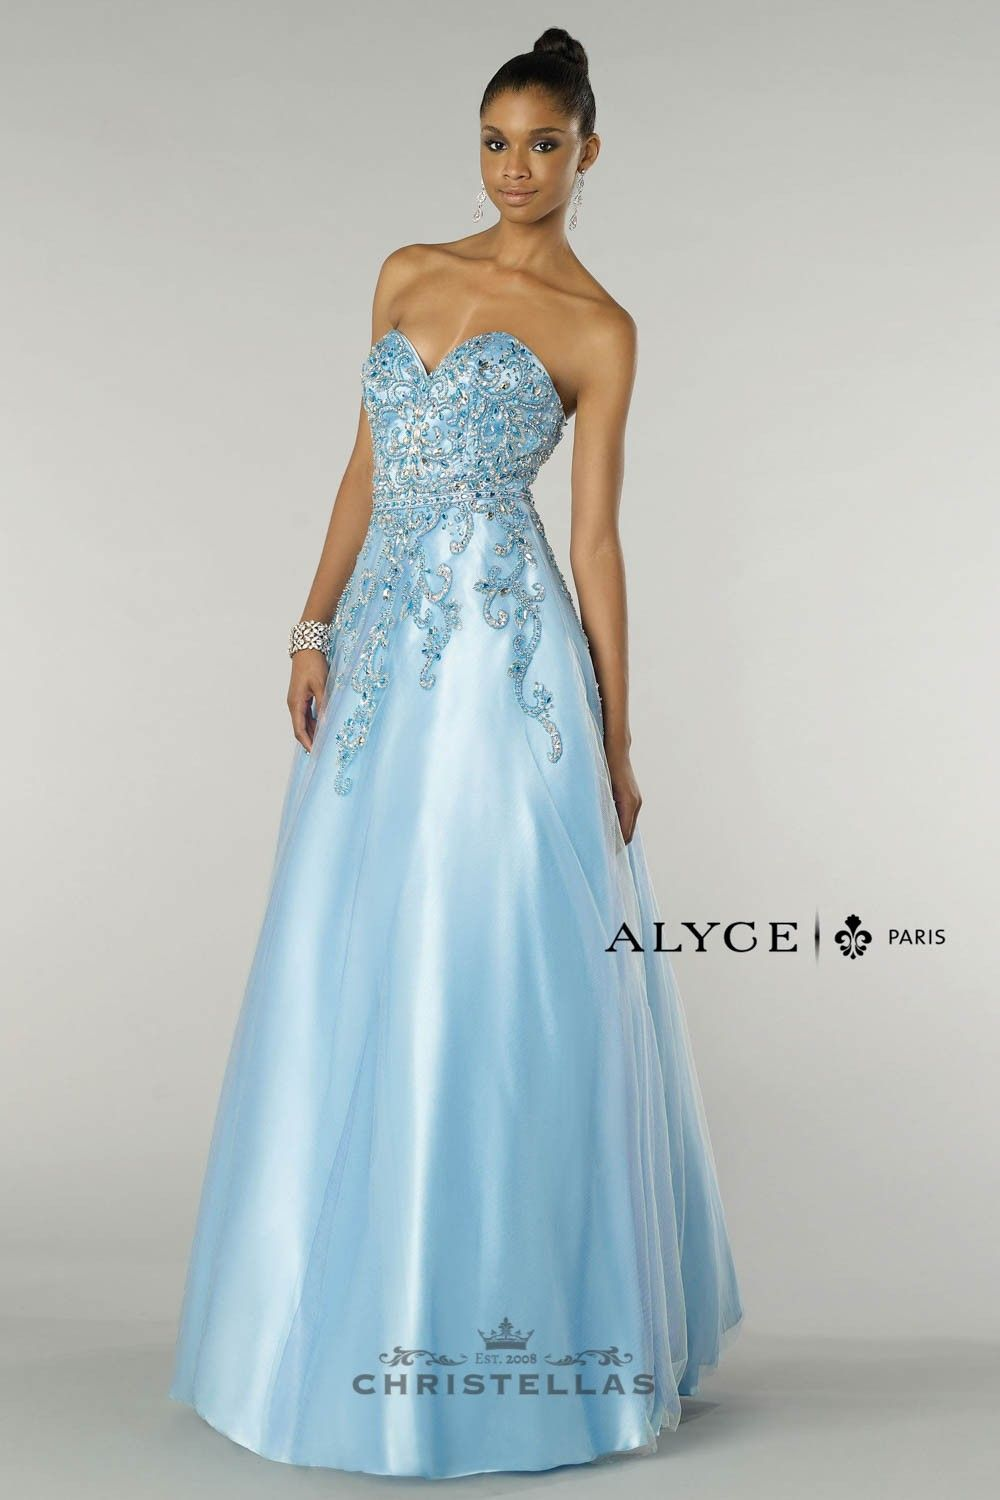 A classic Cinderella-inspired ball gown featuring a sweetheart ...